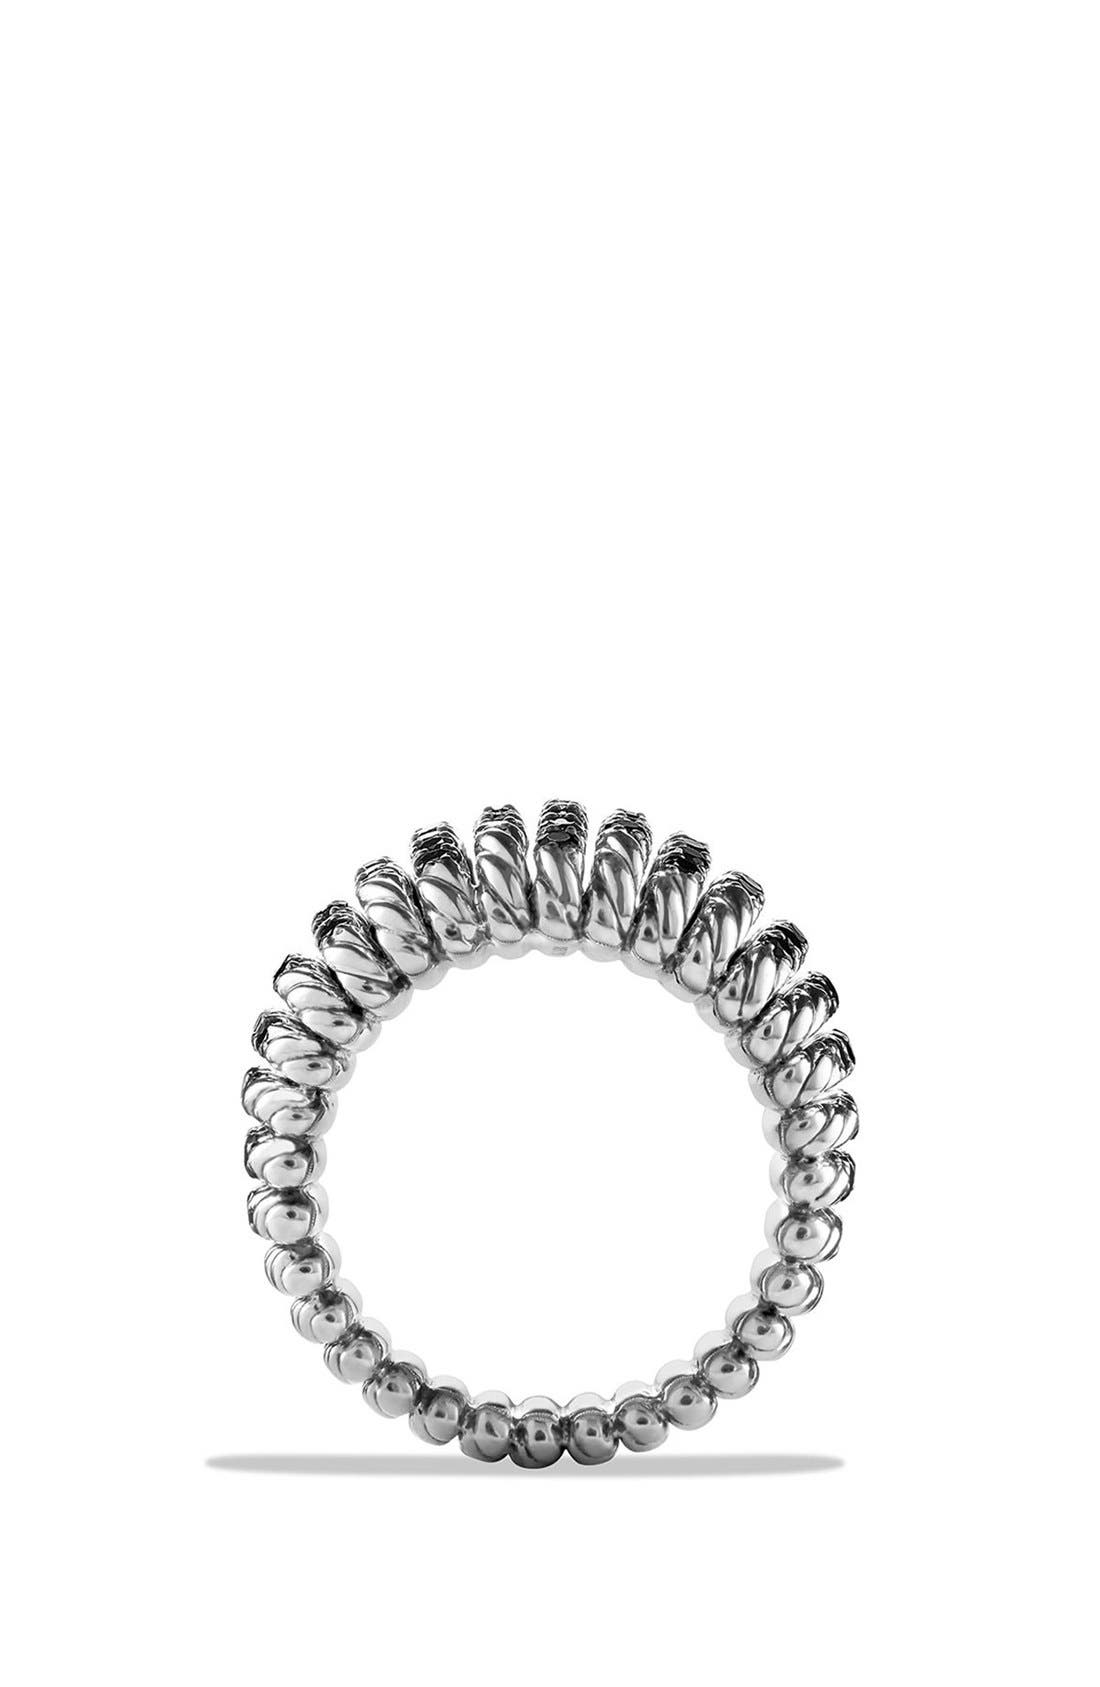 DAVID YURMAN,                             'Tempo' Ring with Spinel,                             Alternate thumbnail 4, color,                             BLACK SPINEL